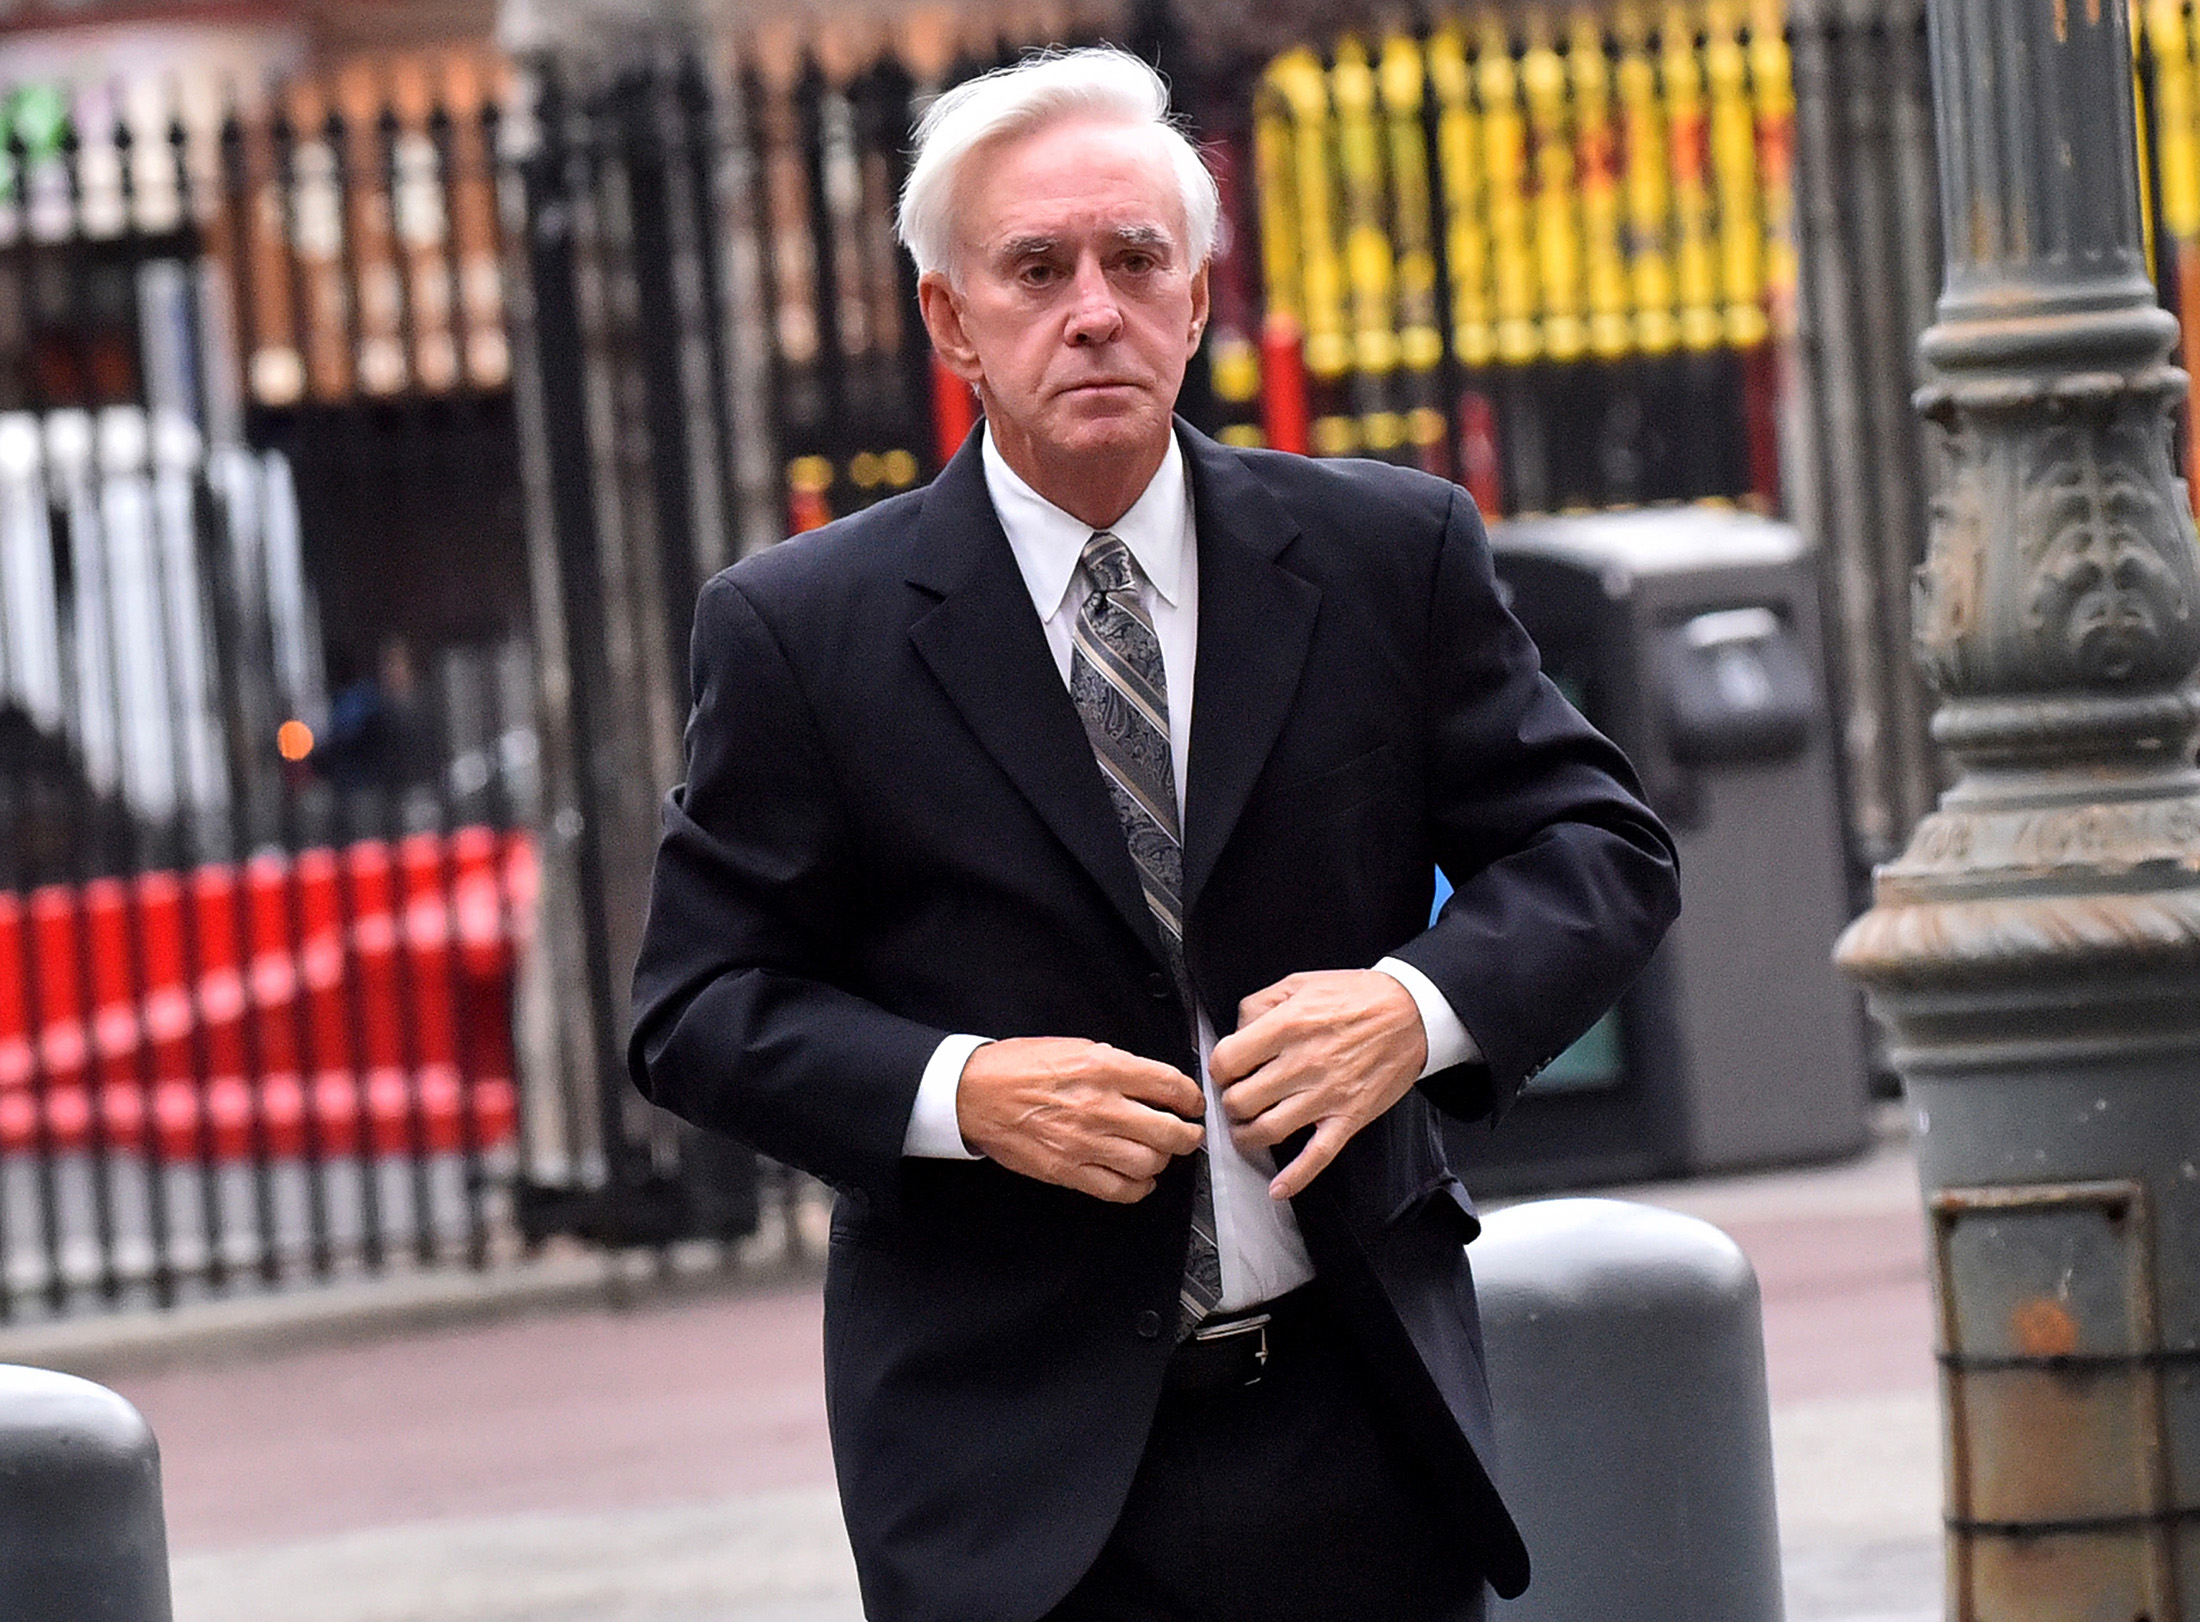 Billy walters sports betting picks scrypt based bitcoins